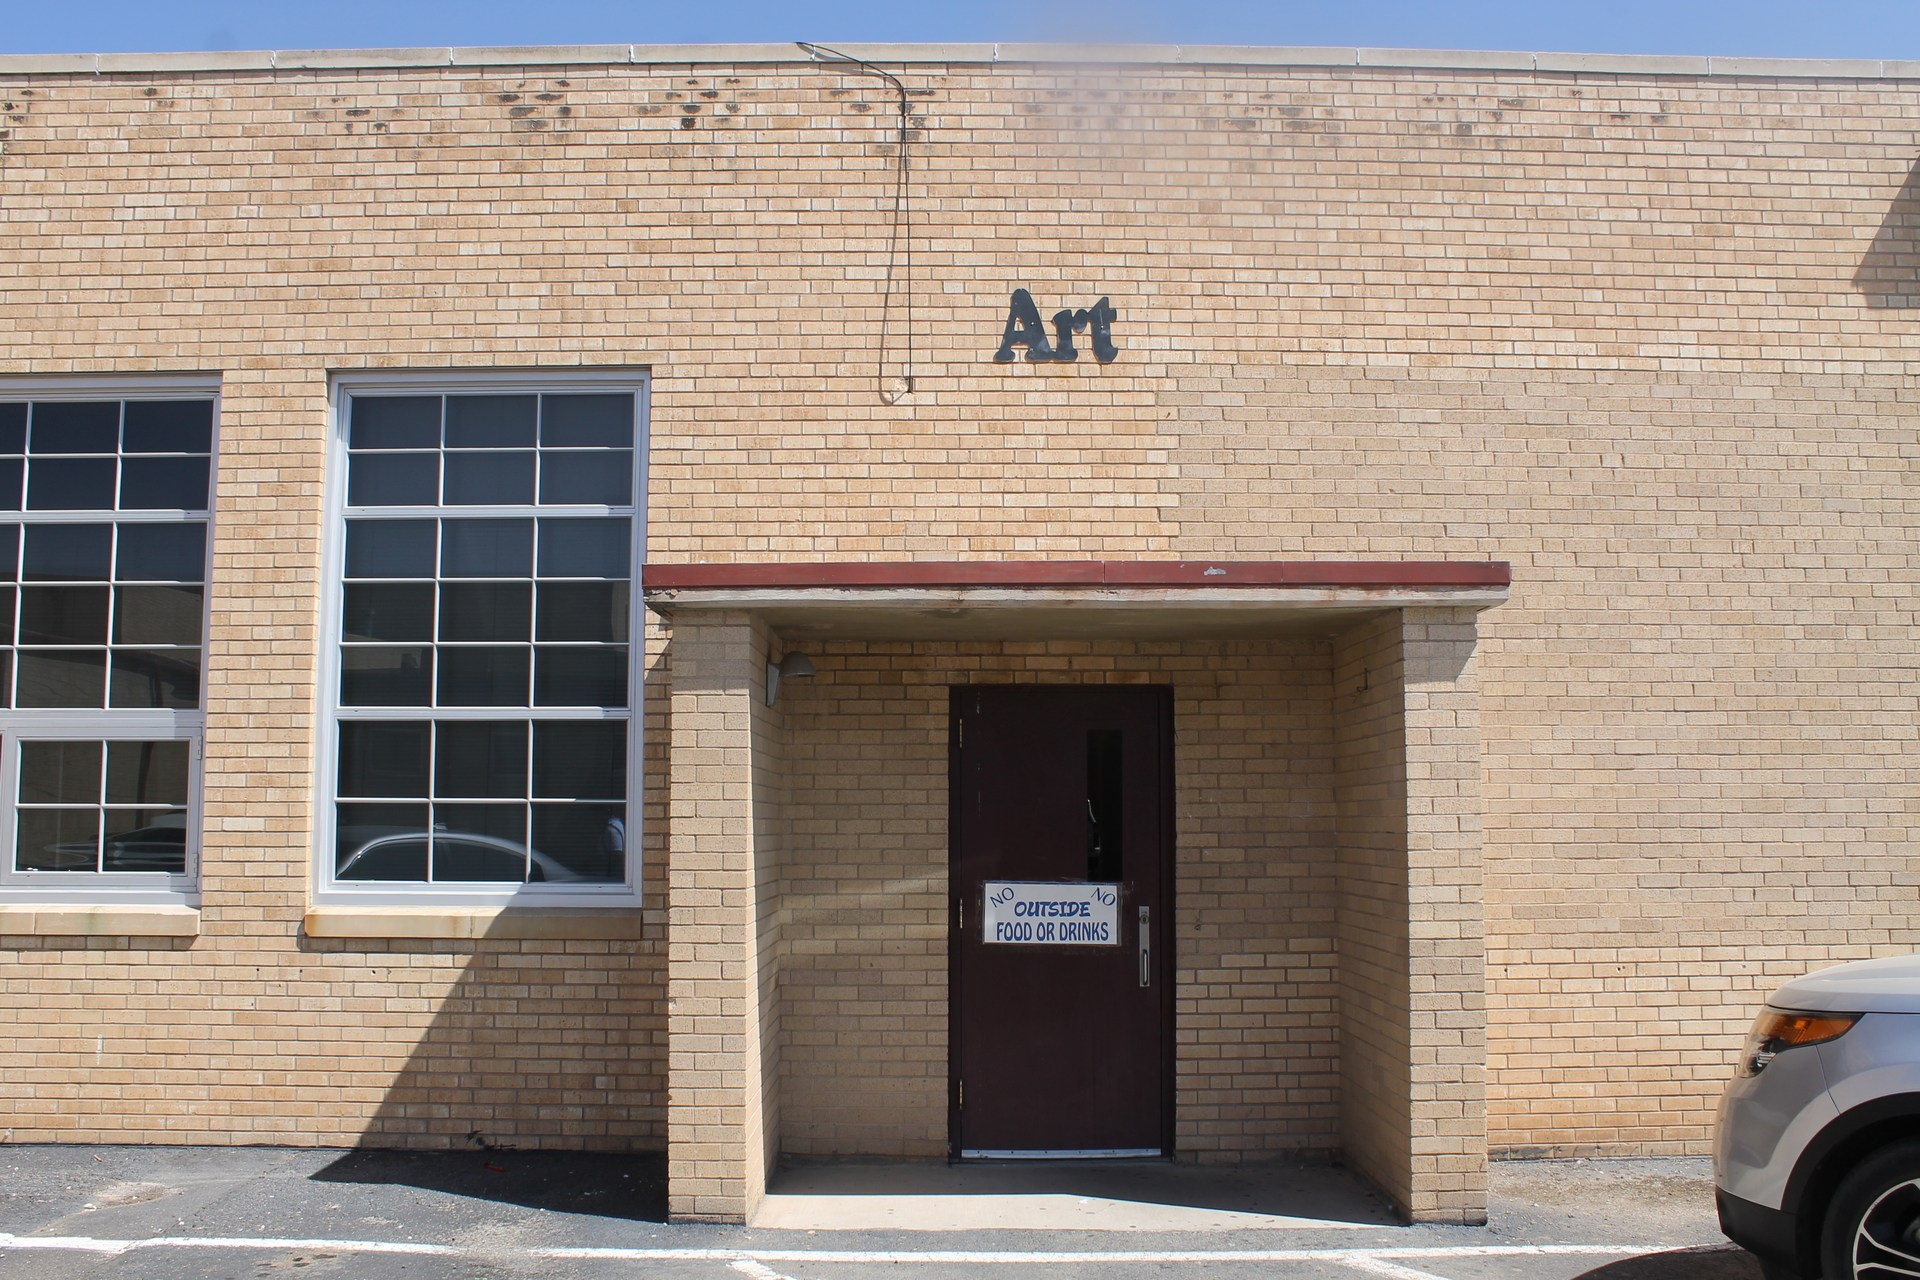 The Art Building